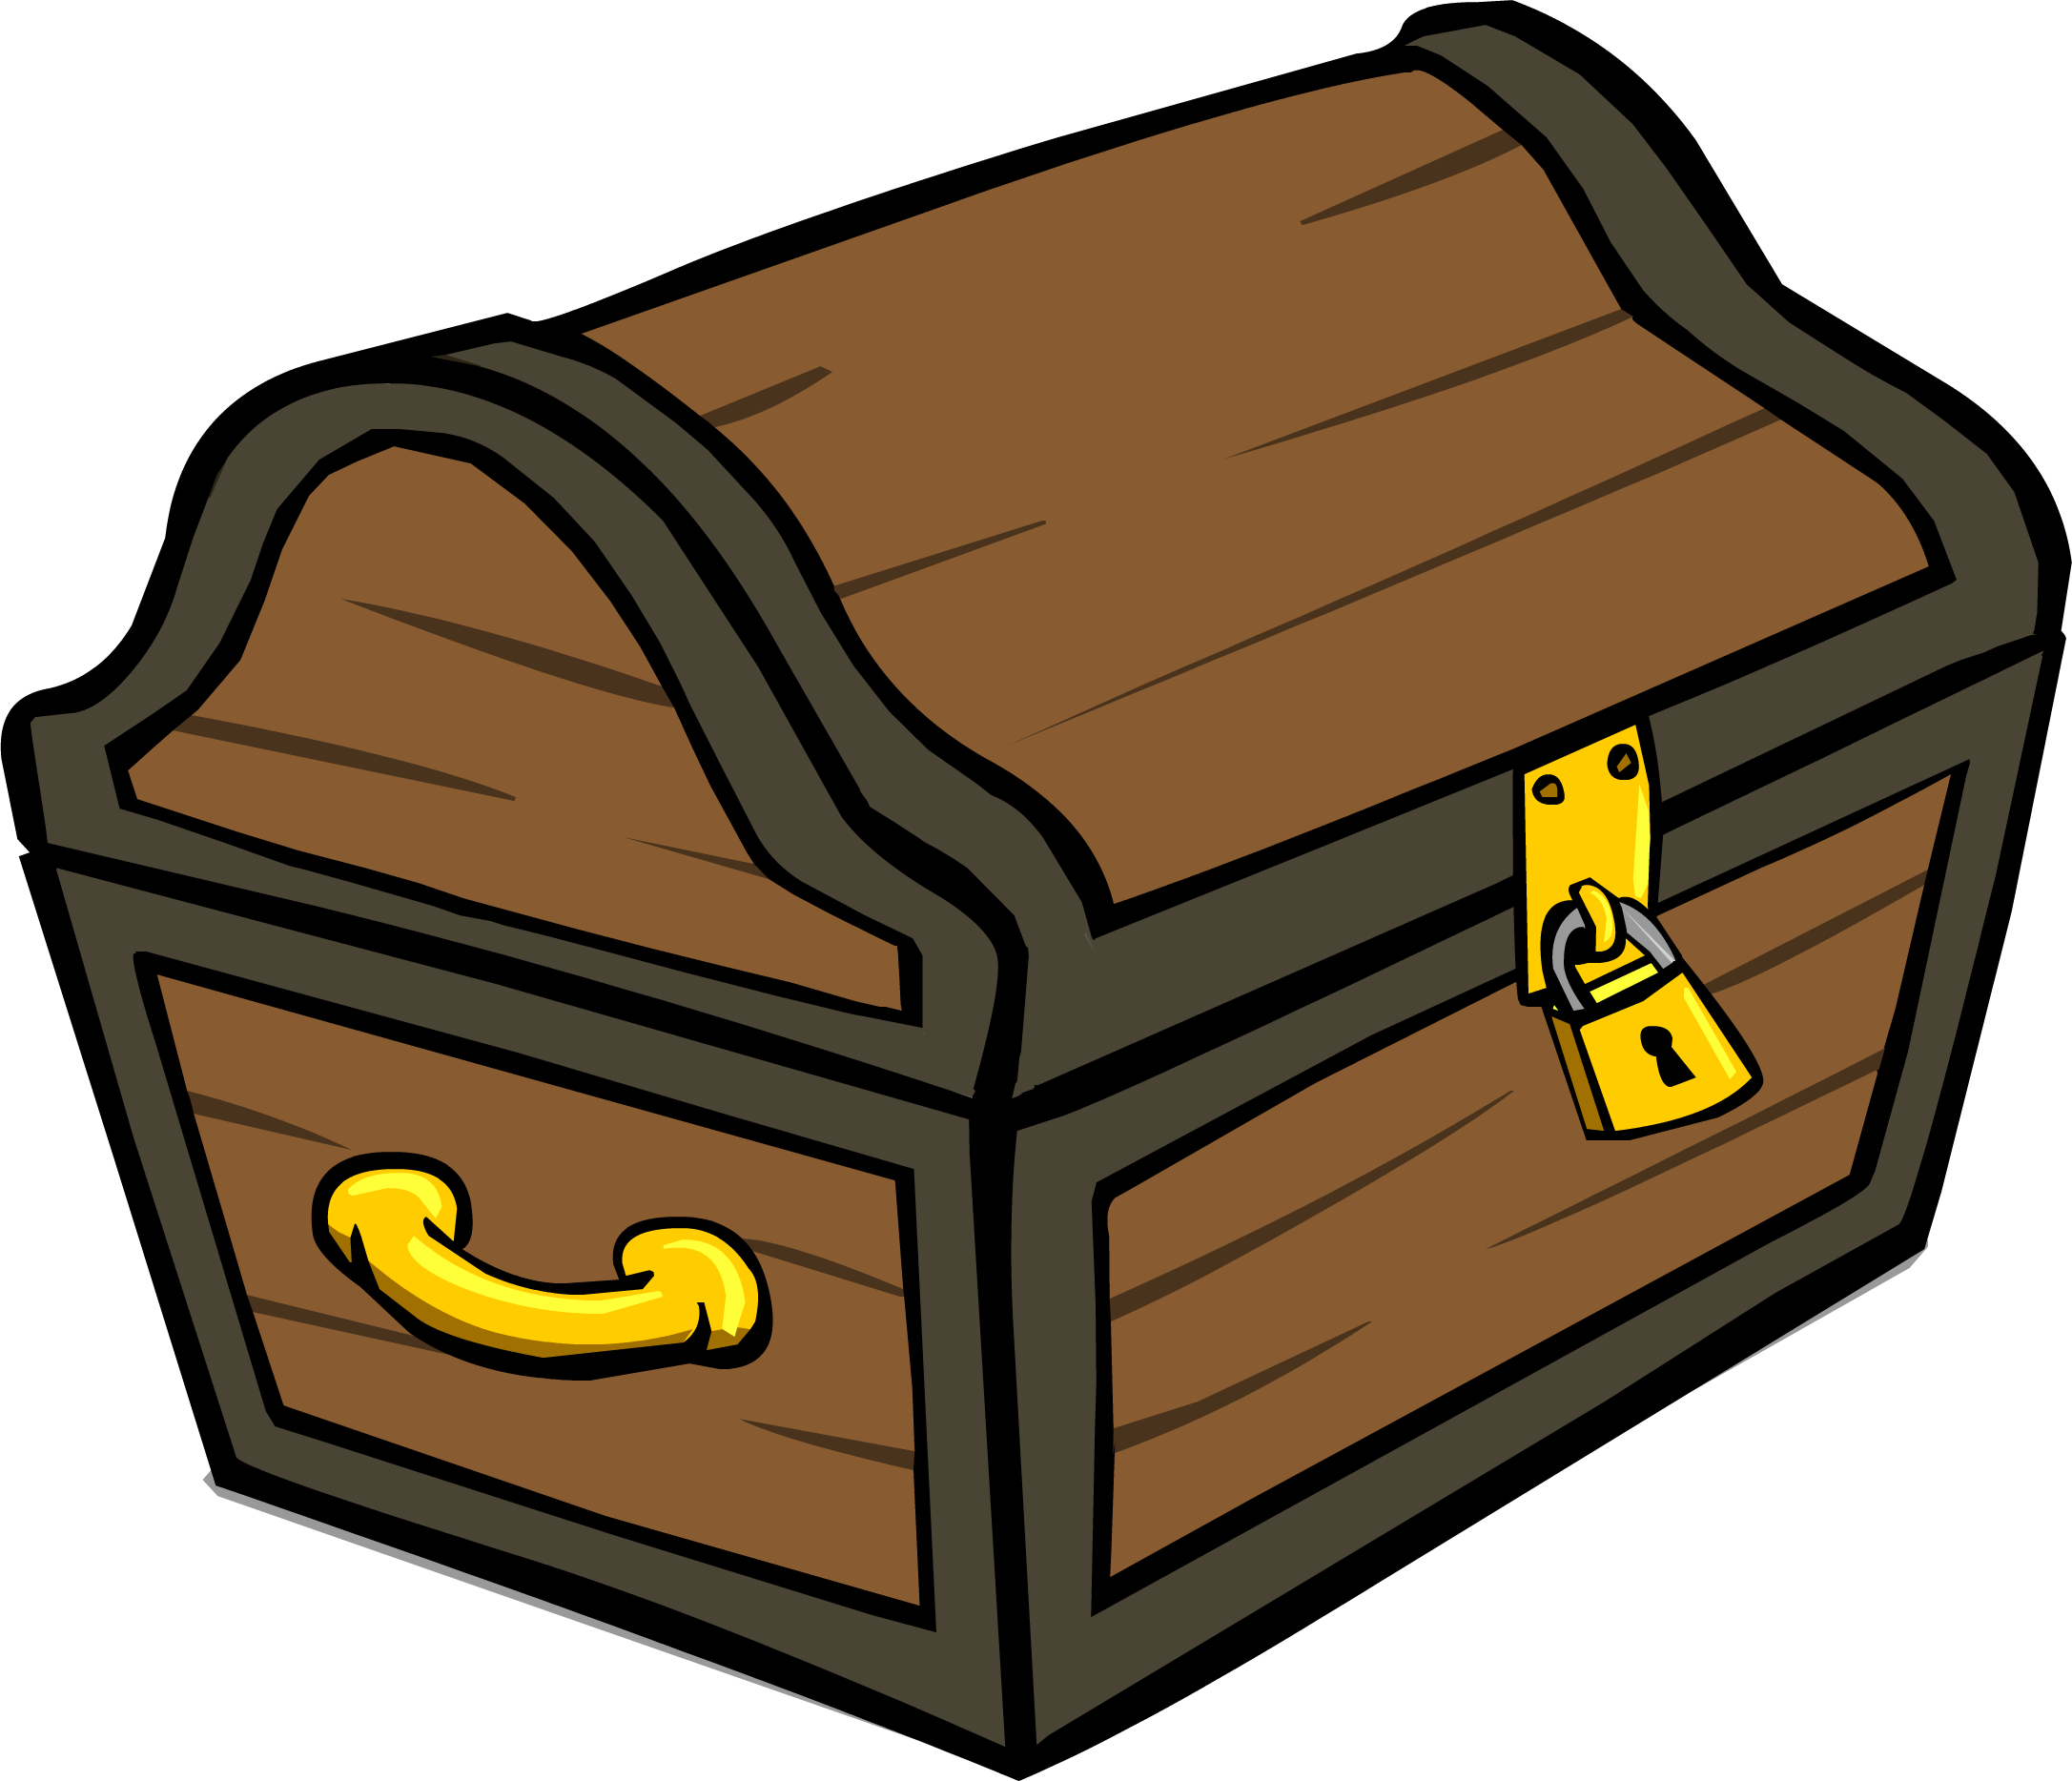 Clipart box chest. Treasure png images free